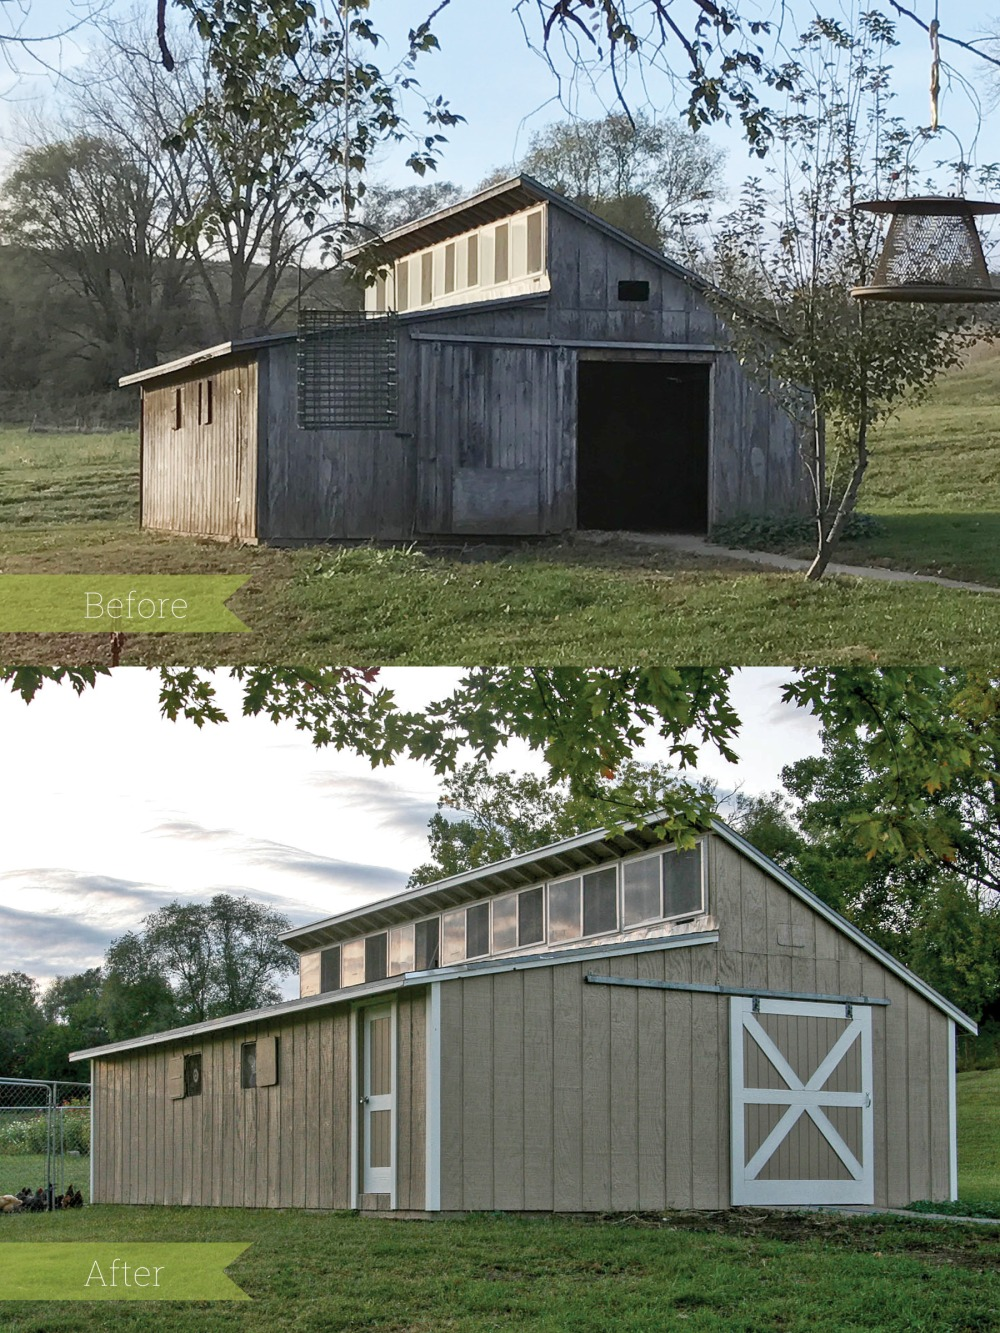 New Coop Before & After Layouts Final